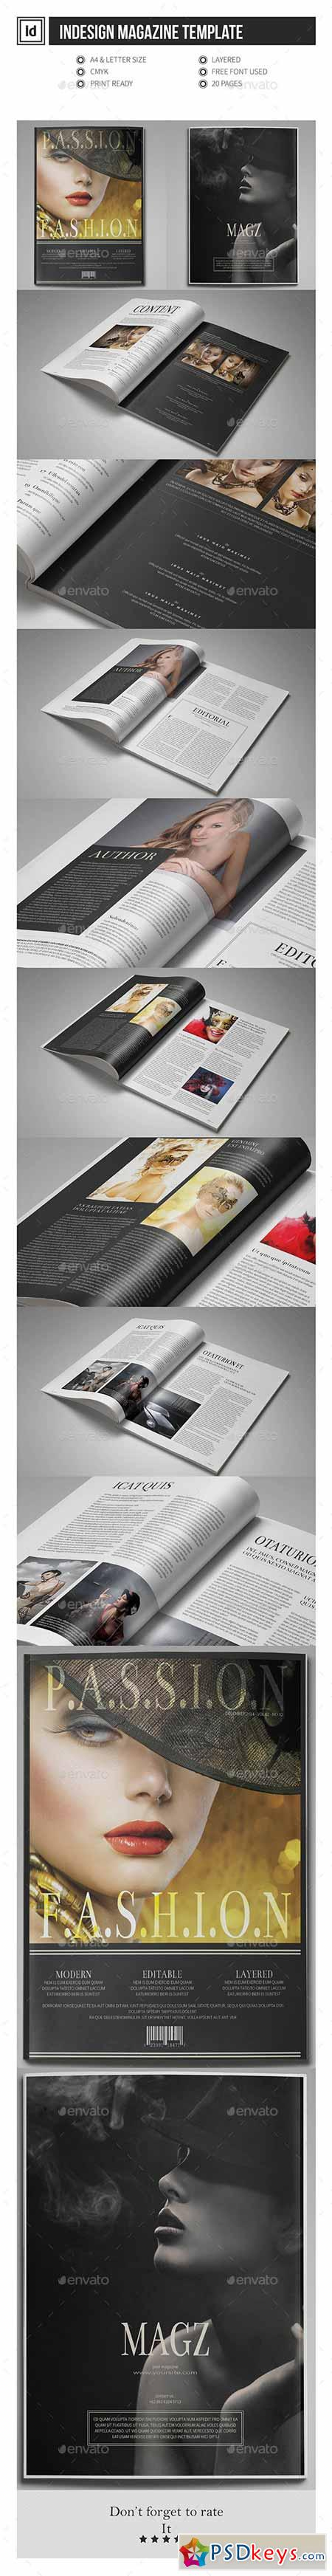 Multipurpose indesign magazine template 11655513 free for Adobe indesign magazine templates free download